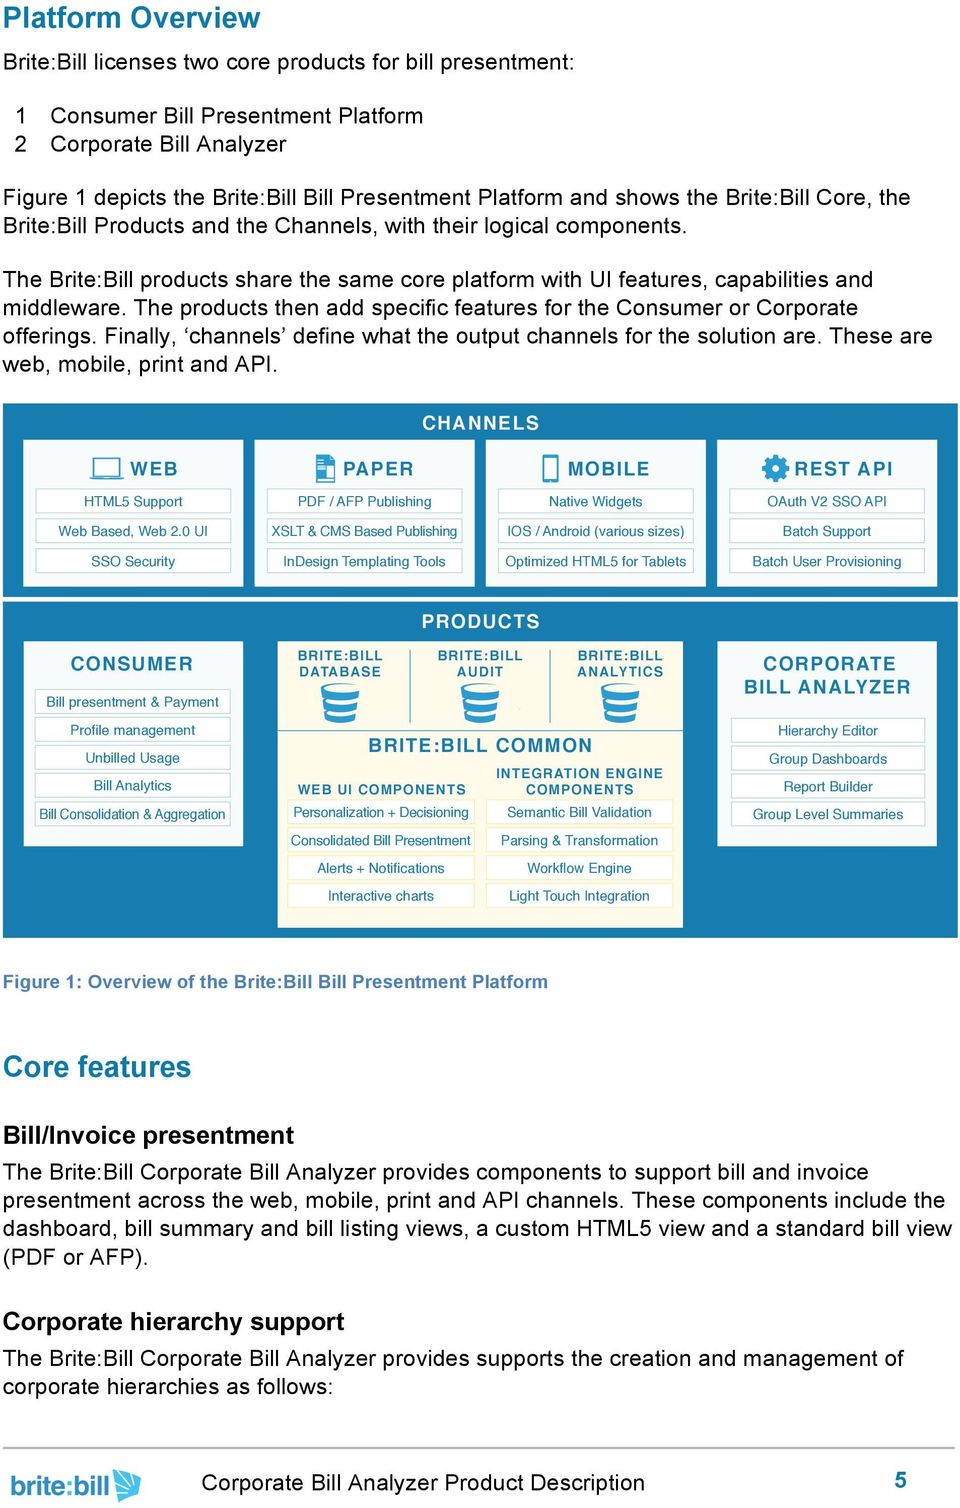 The Brite:Bill products share the same core platform with UI features, capabilities and middleware. The products then add specific features for the Consumer or Corporate offerings.